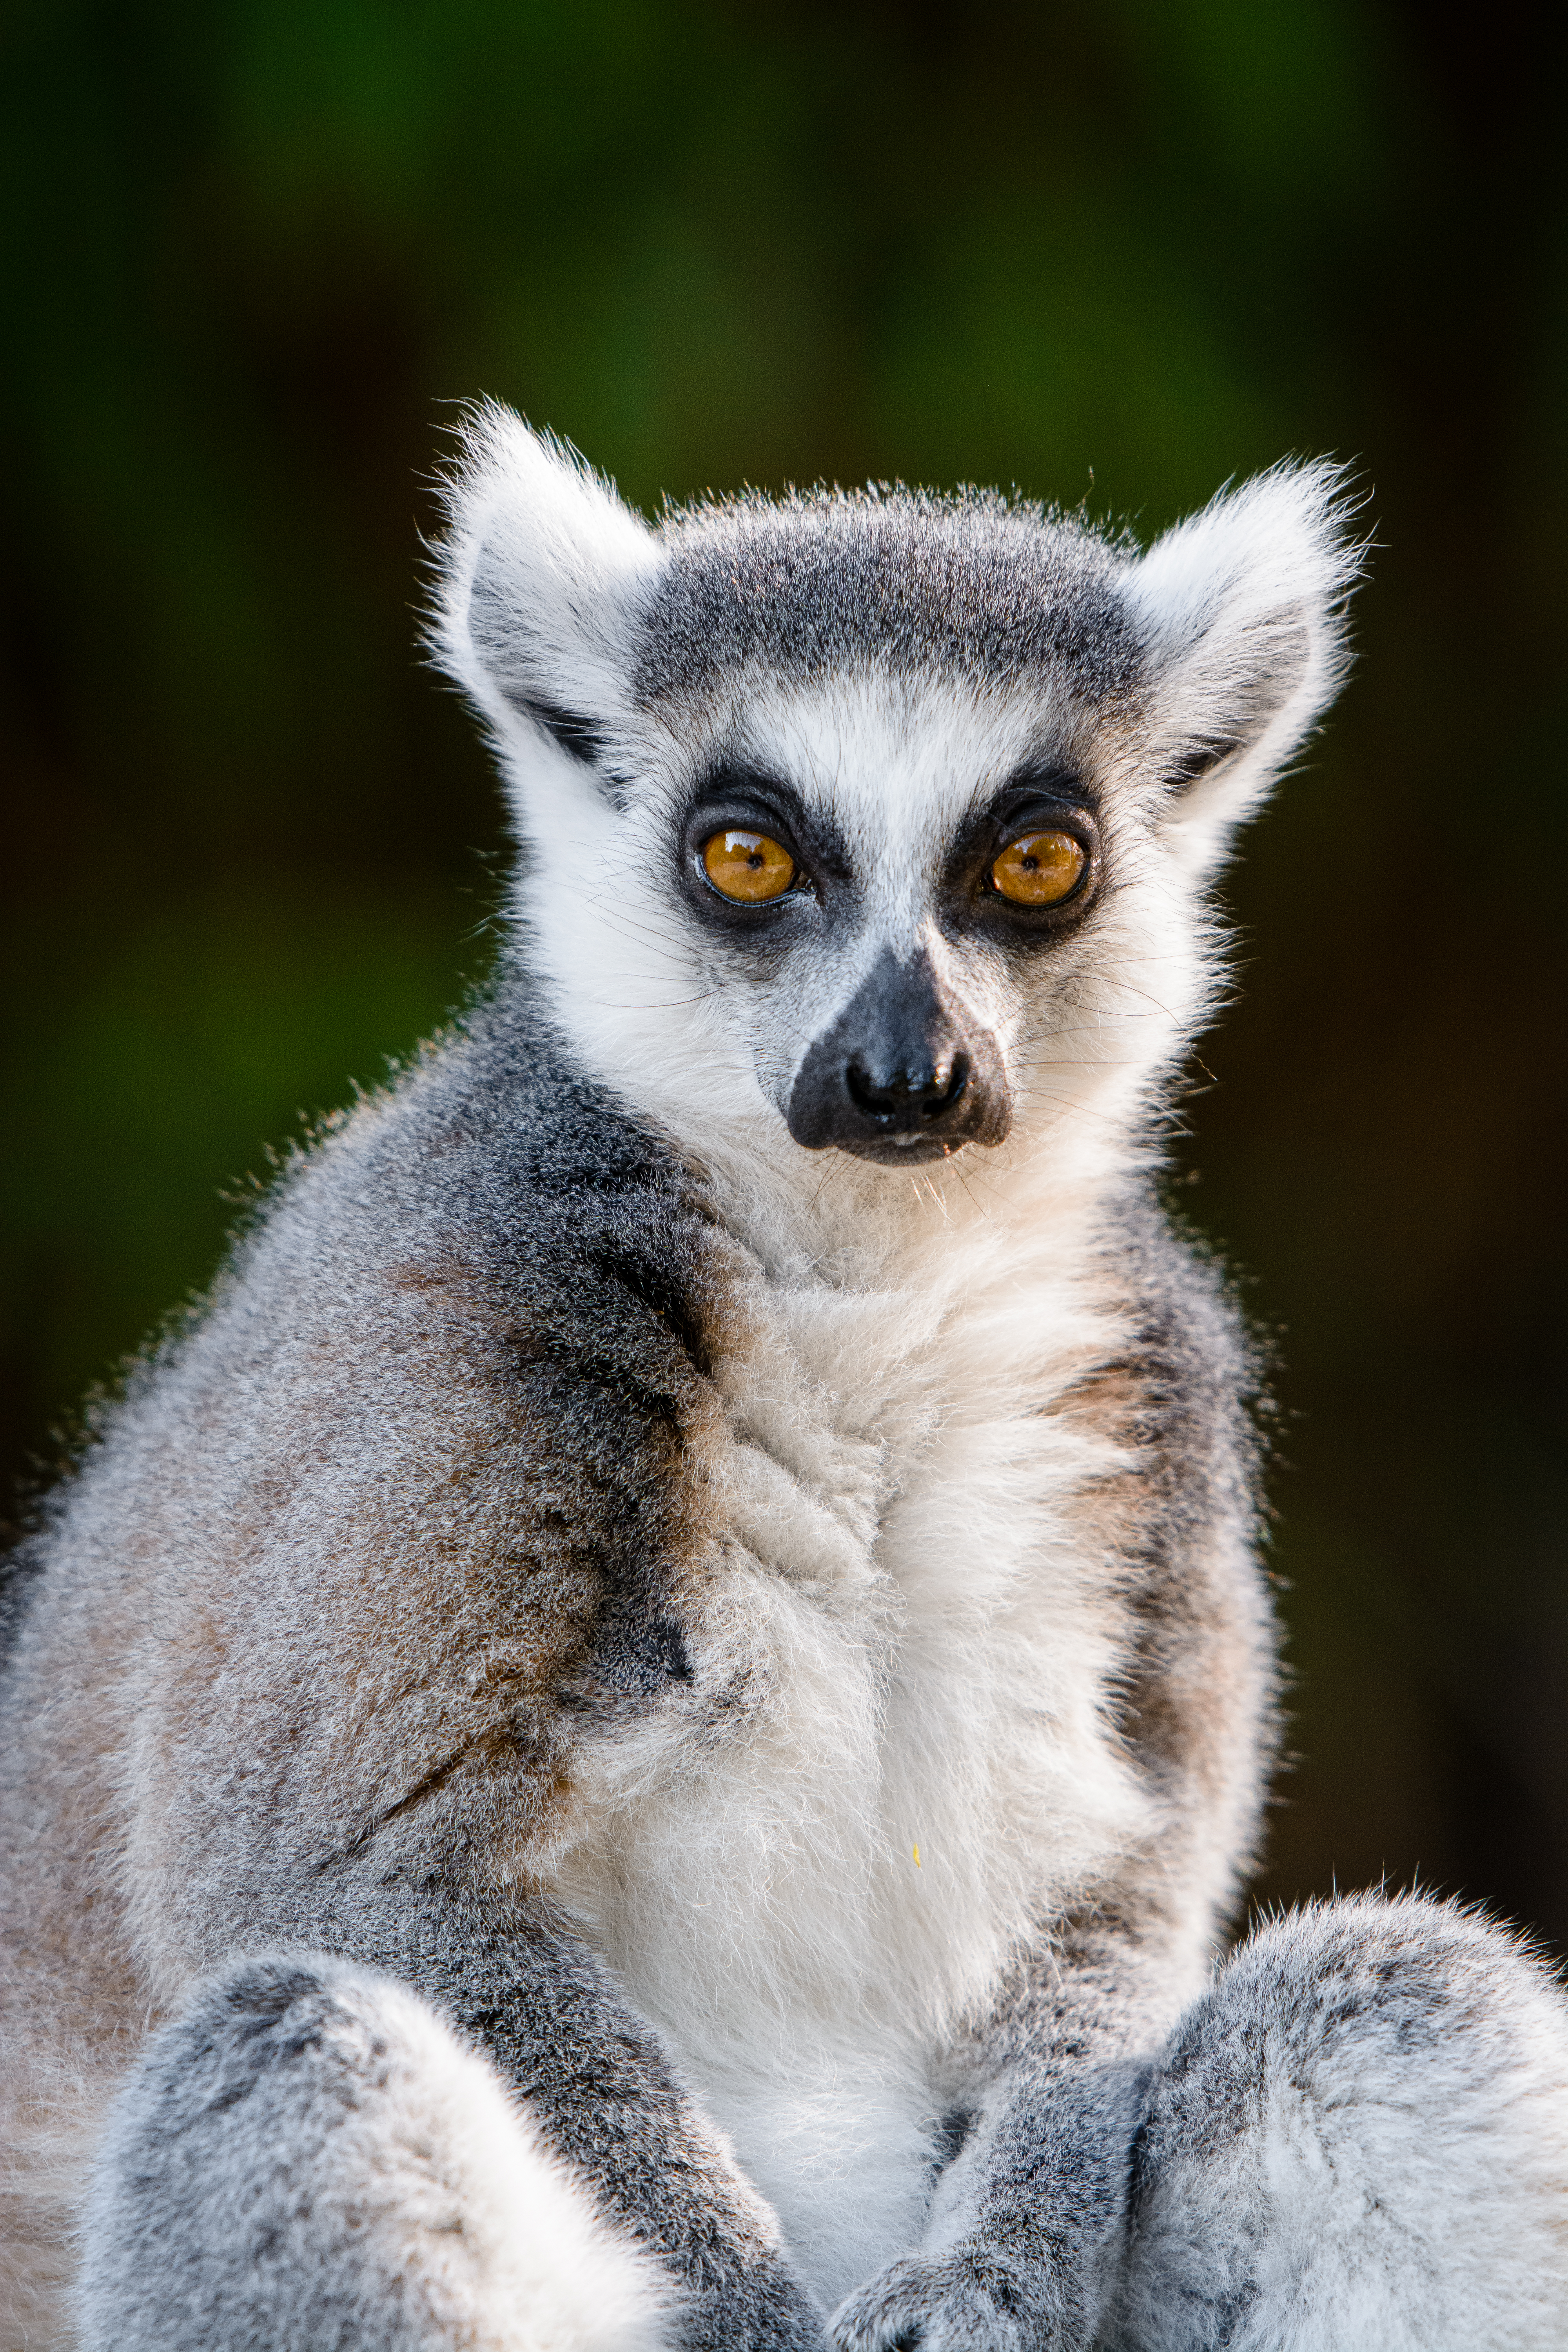 116663 download wallpaper Animals, Lemur, Sight, Opinion, Cool, Animal, Wildlife screensavers and pictures for free